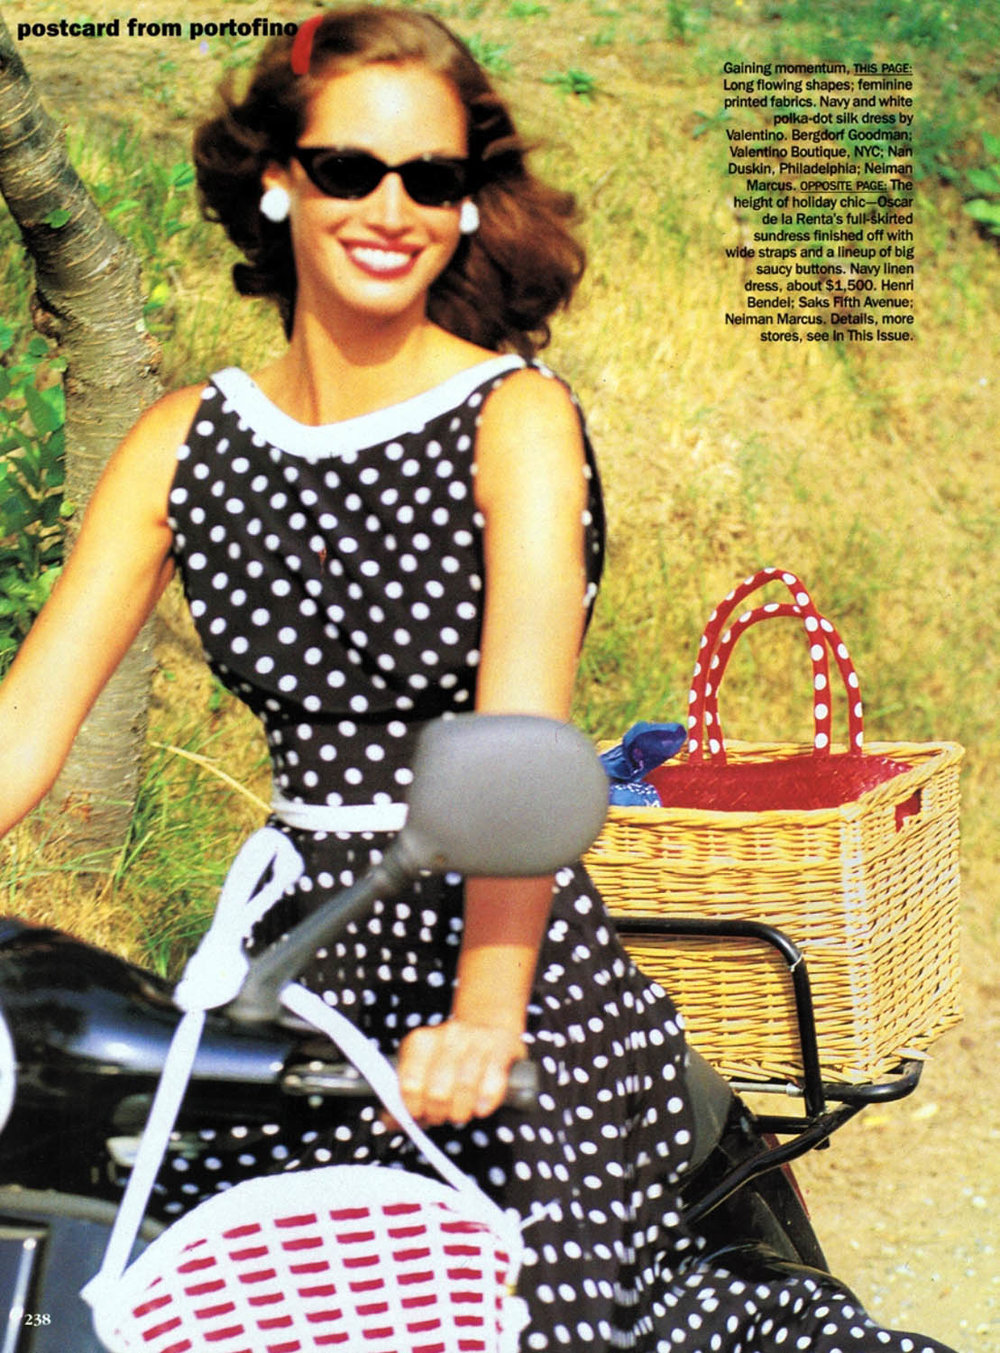 christy-turlington-timeless-summer-style-postcard-from-portofino--_.jpg